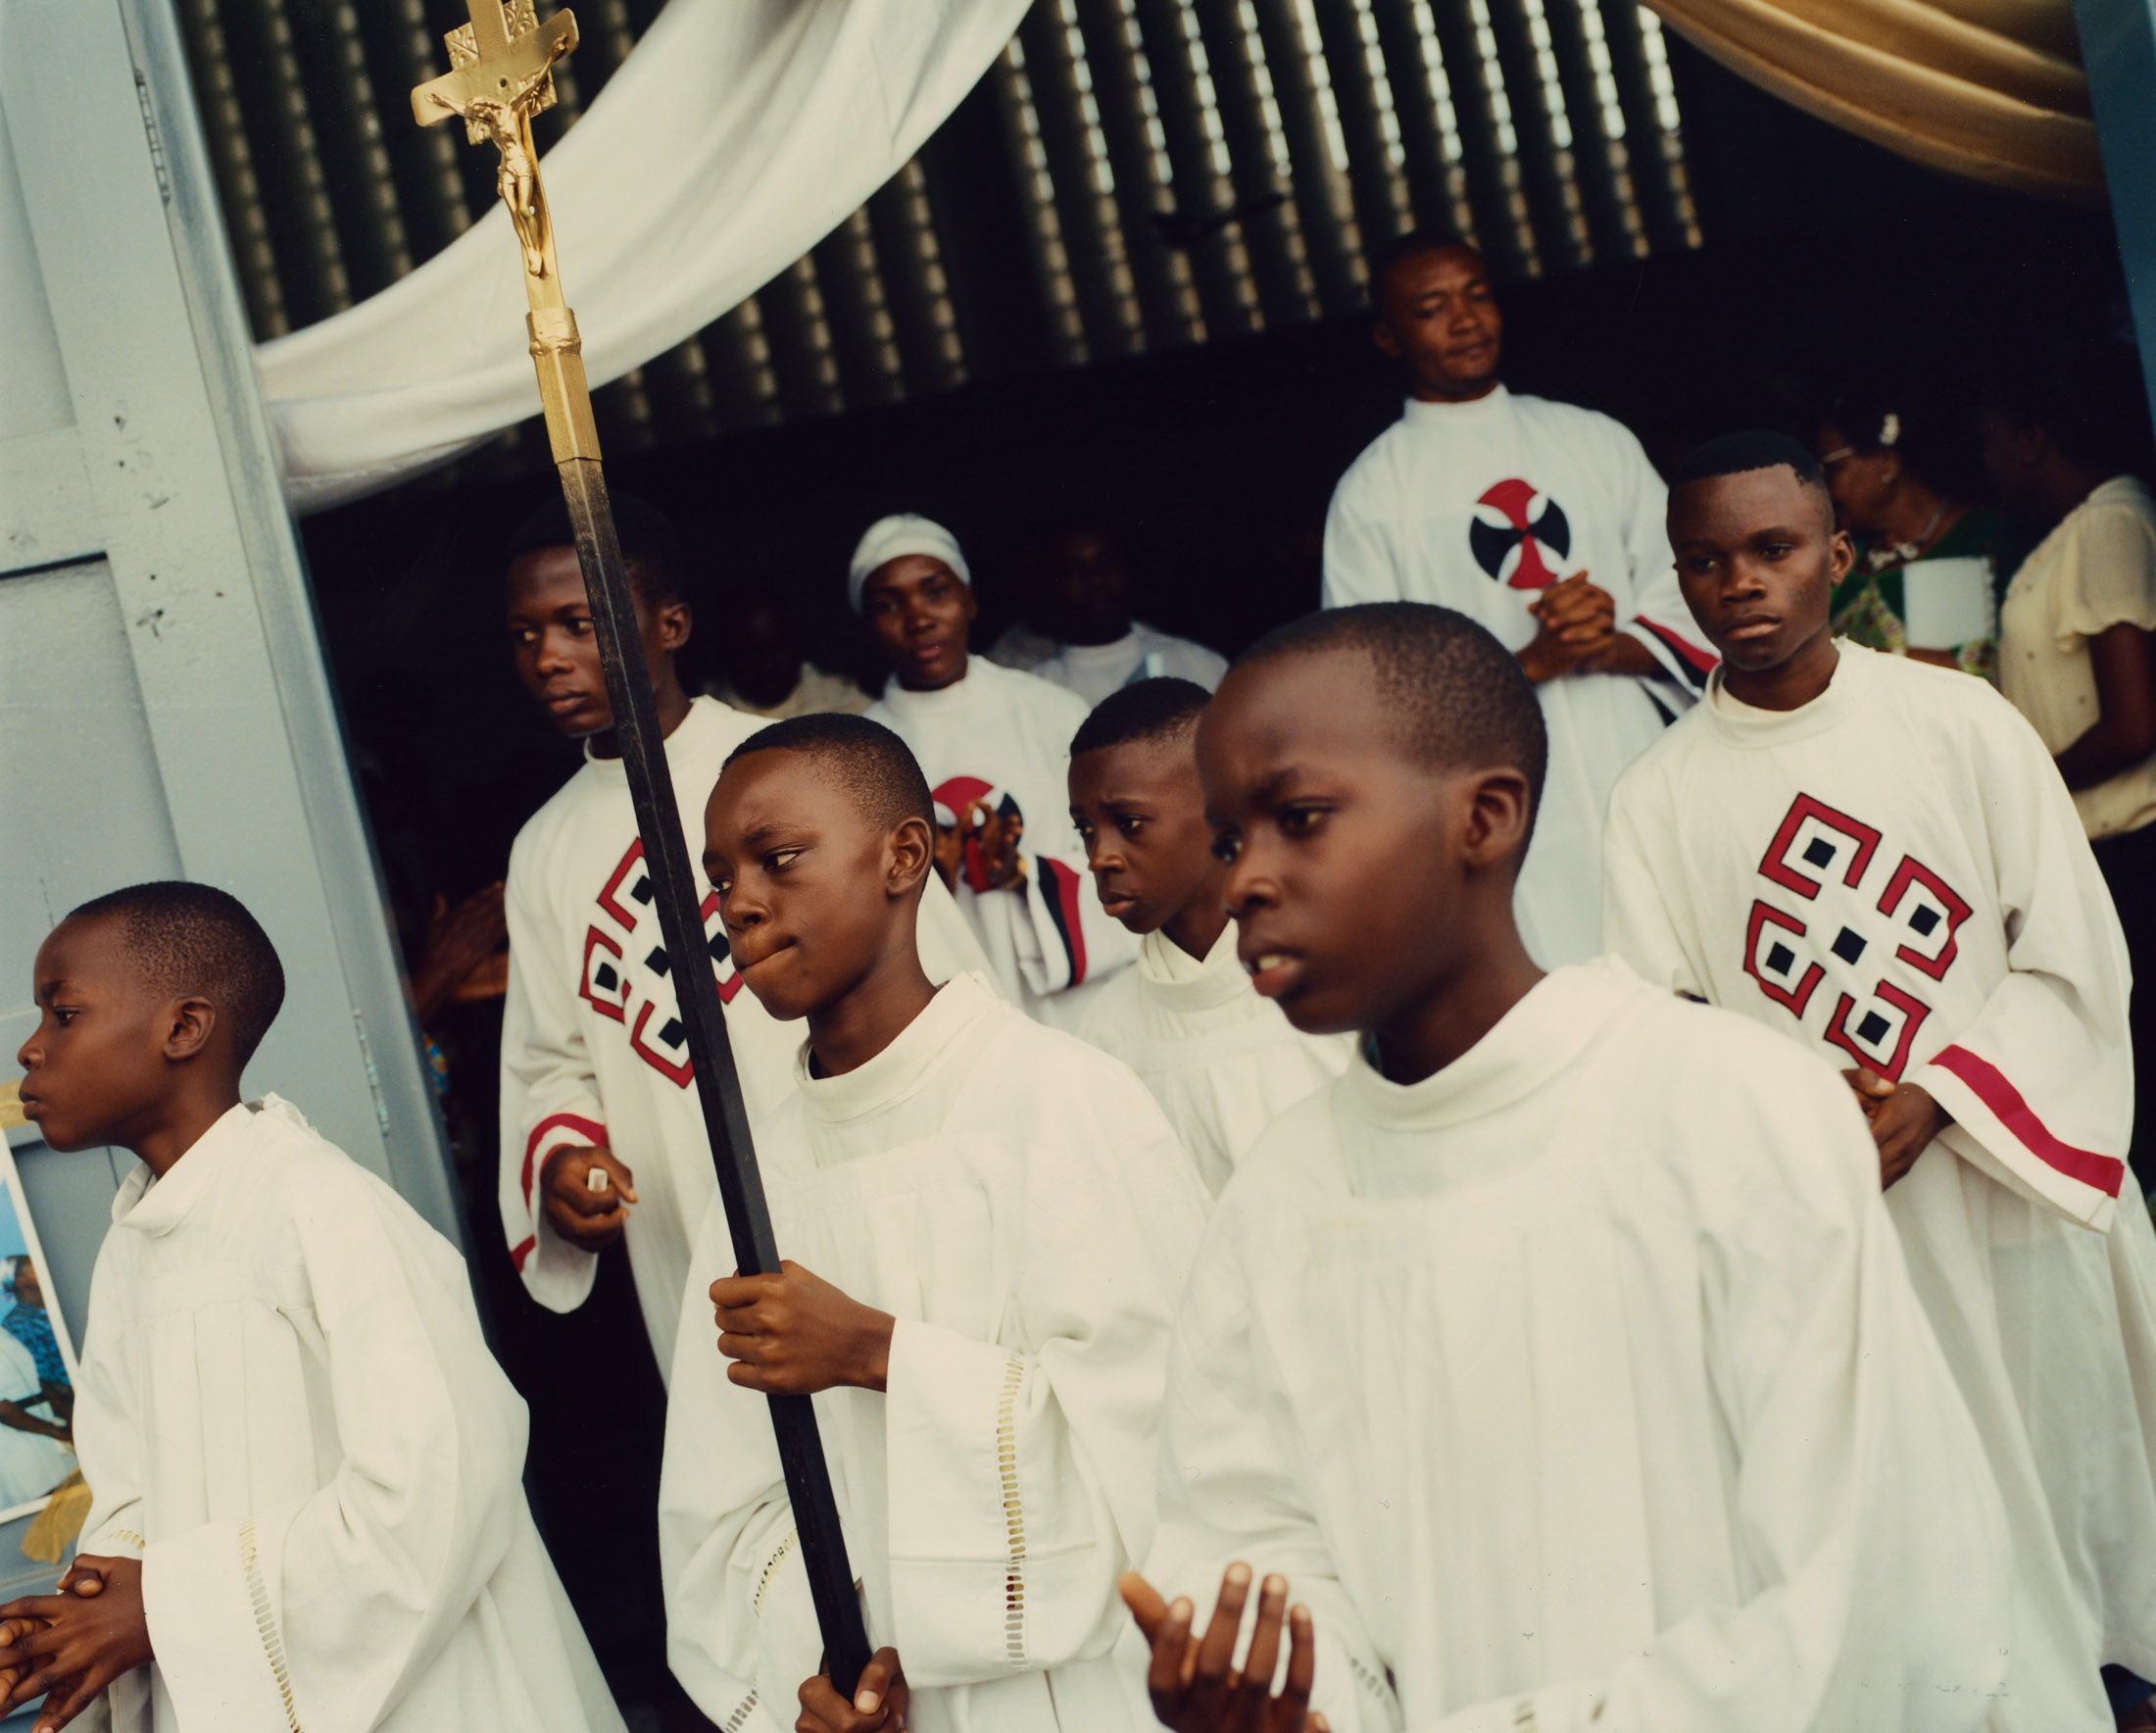 Between Sunday services, the acolytes of Saint Dominique walk the parish grounds. Limete, Kinshasa.